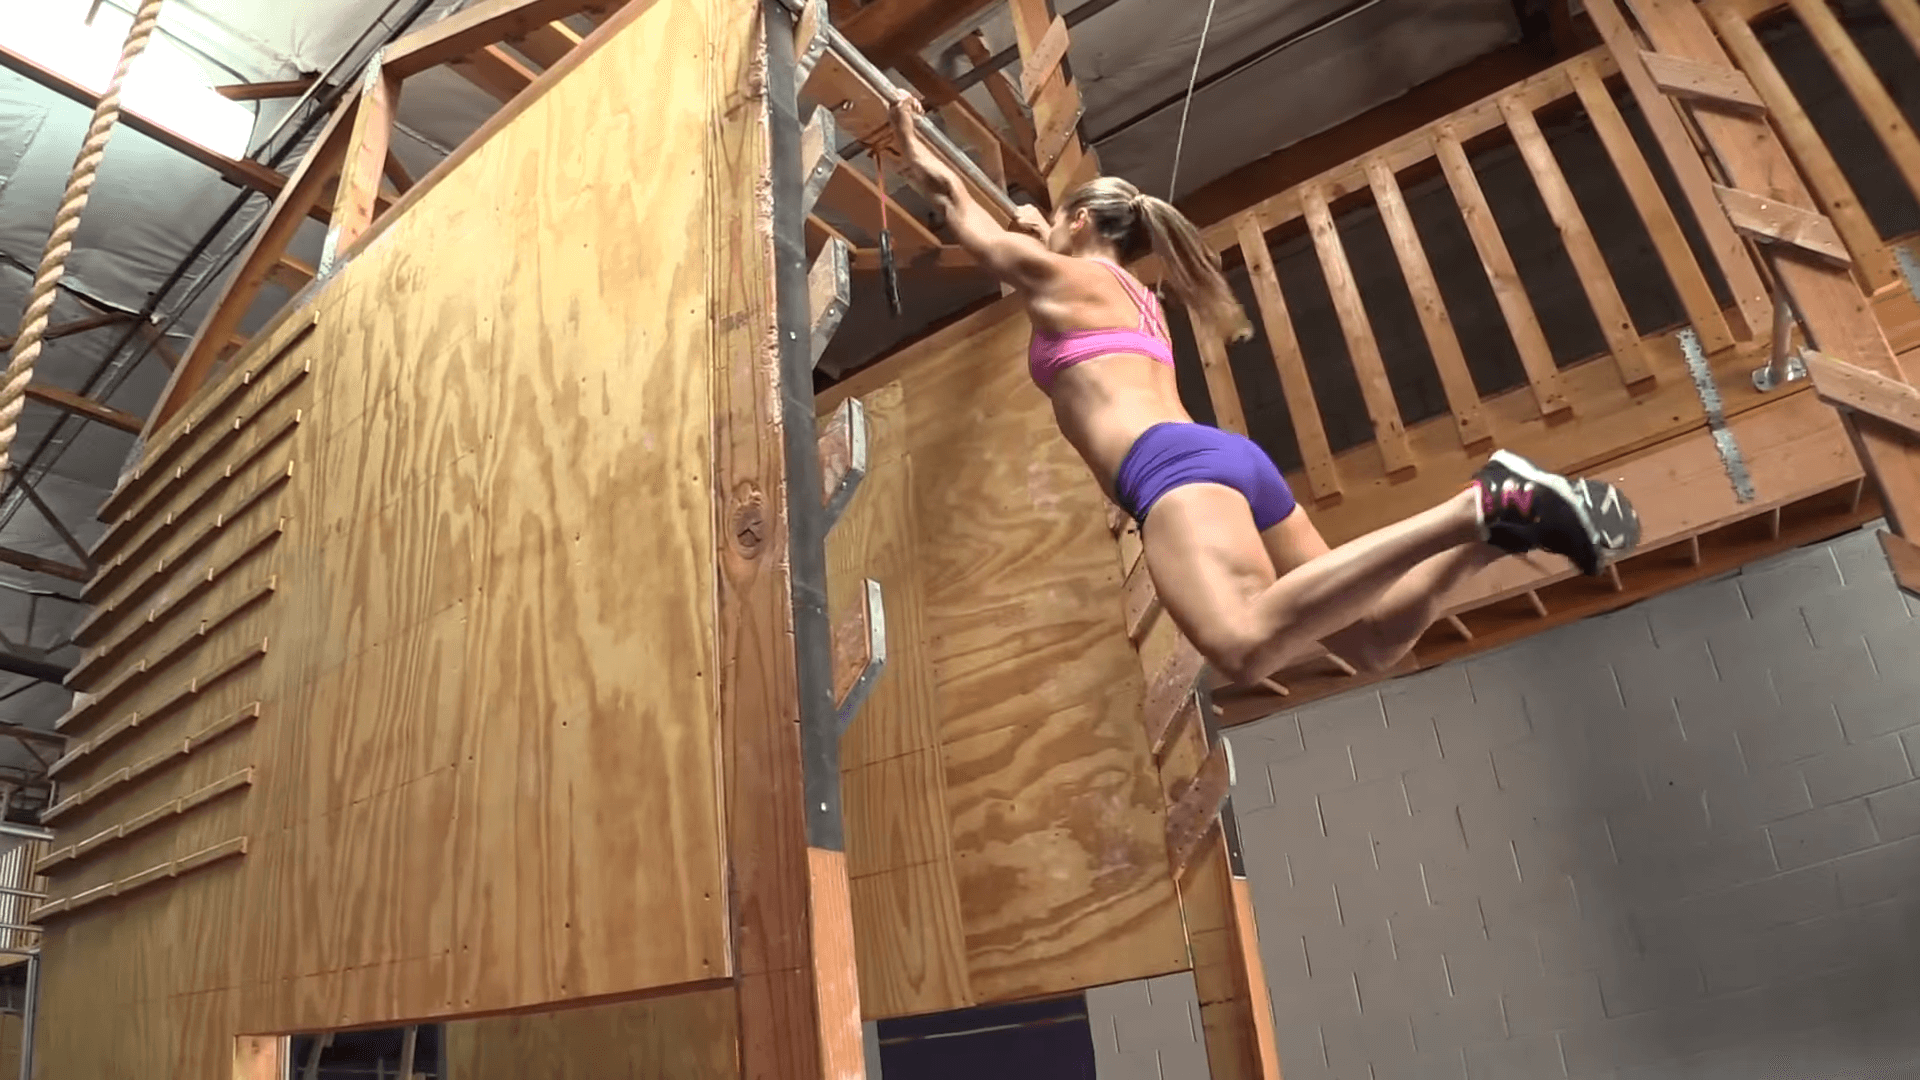 American Ninja Warrior:  My Goal for 2016